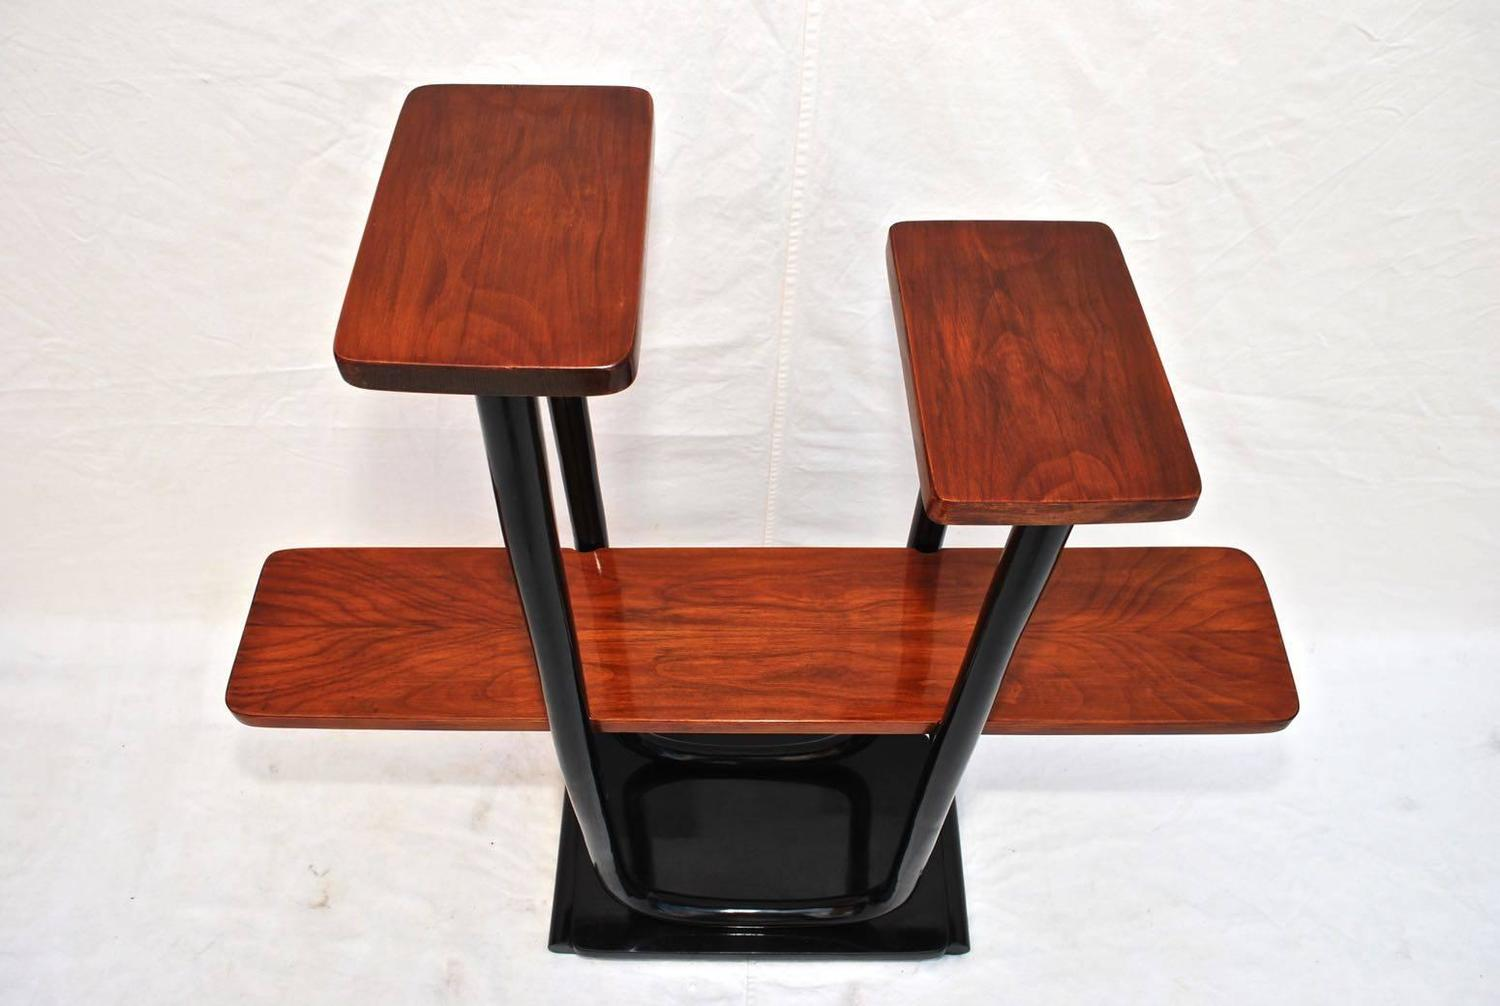 french art deco etagere shelf with rose wood for sale at 1stdibs. Black Bedroom Furniture Sets. Home Design Ideas